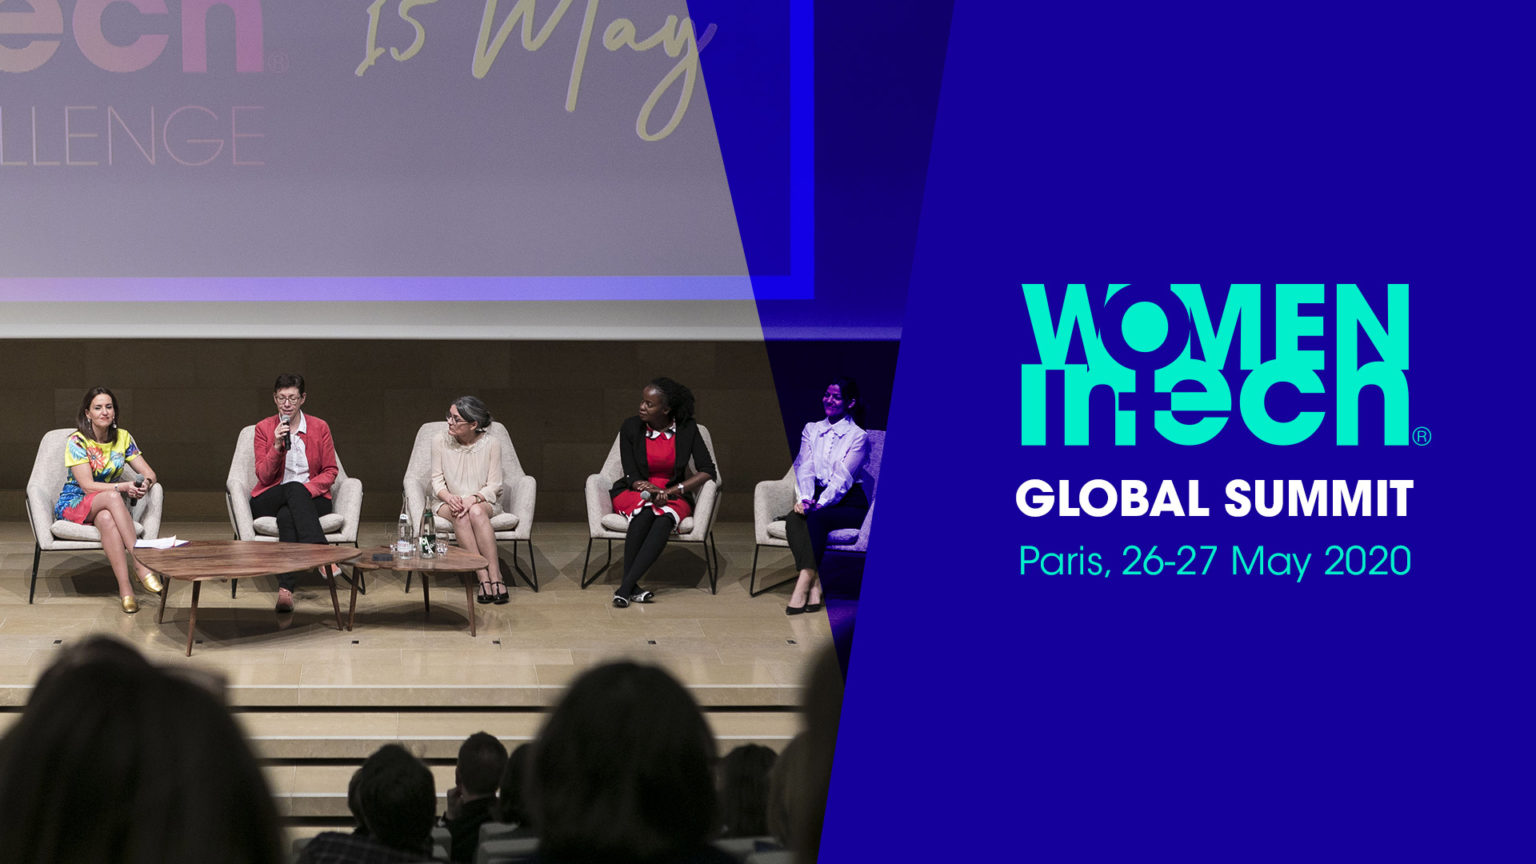 Women in Tech Global Summit in Paris on the 26 and 27 May 2020